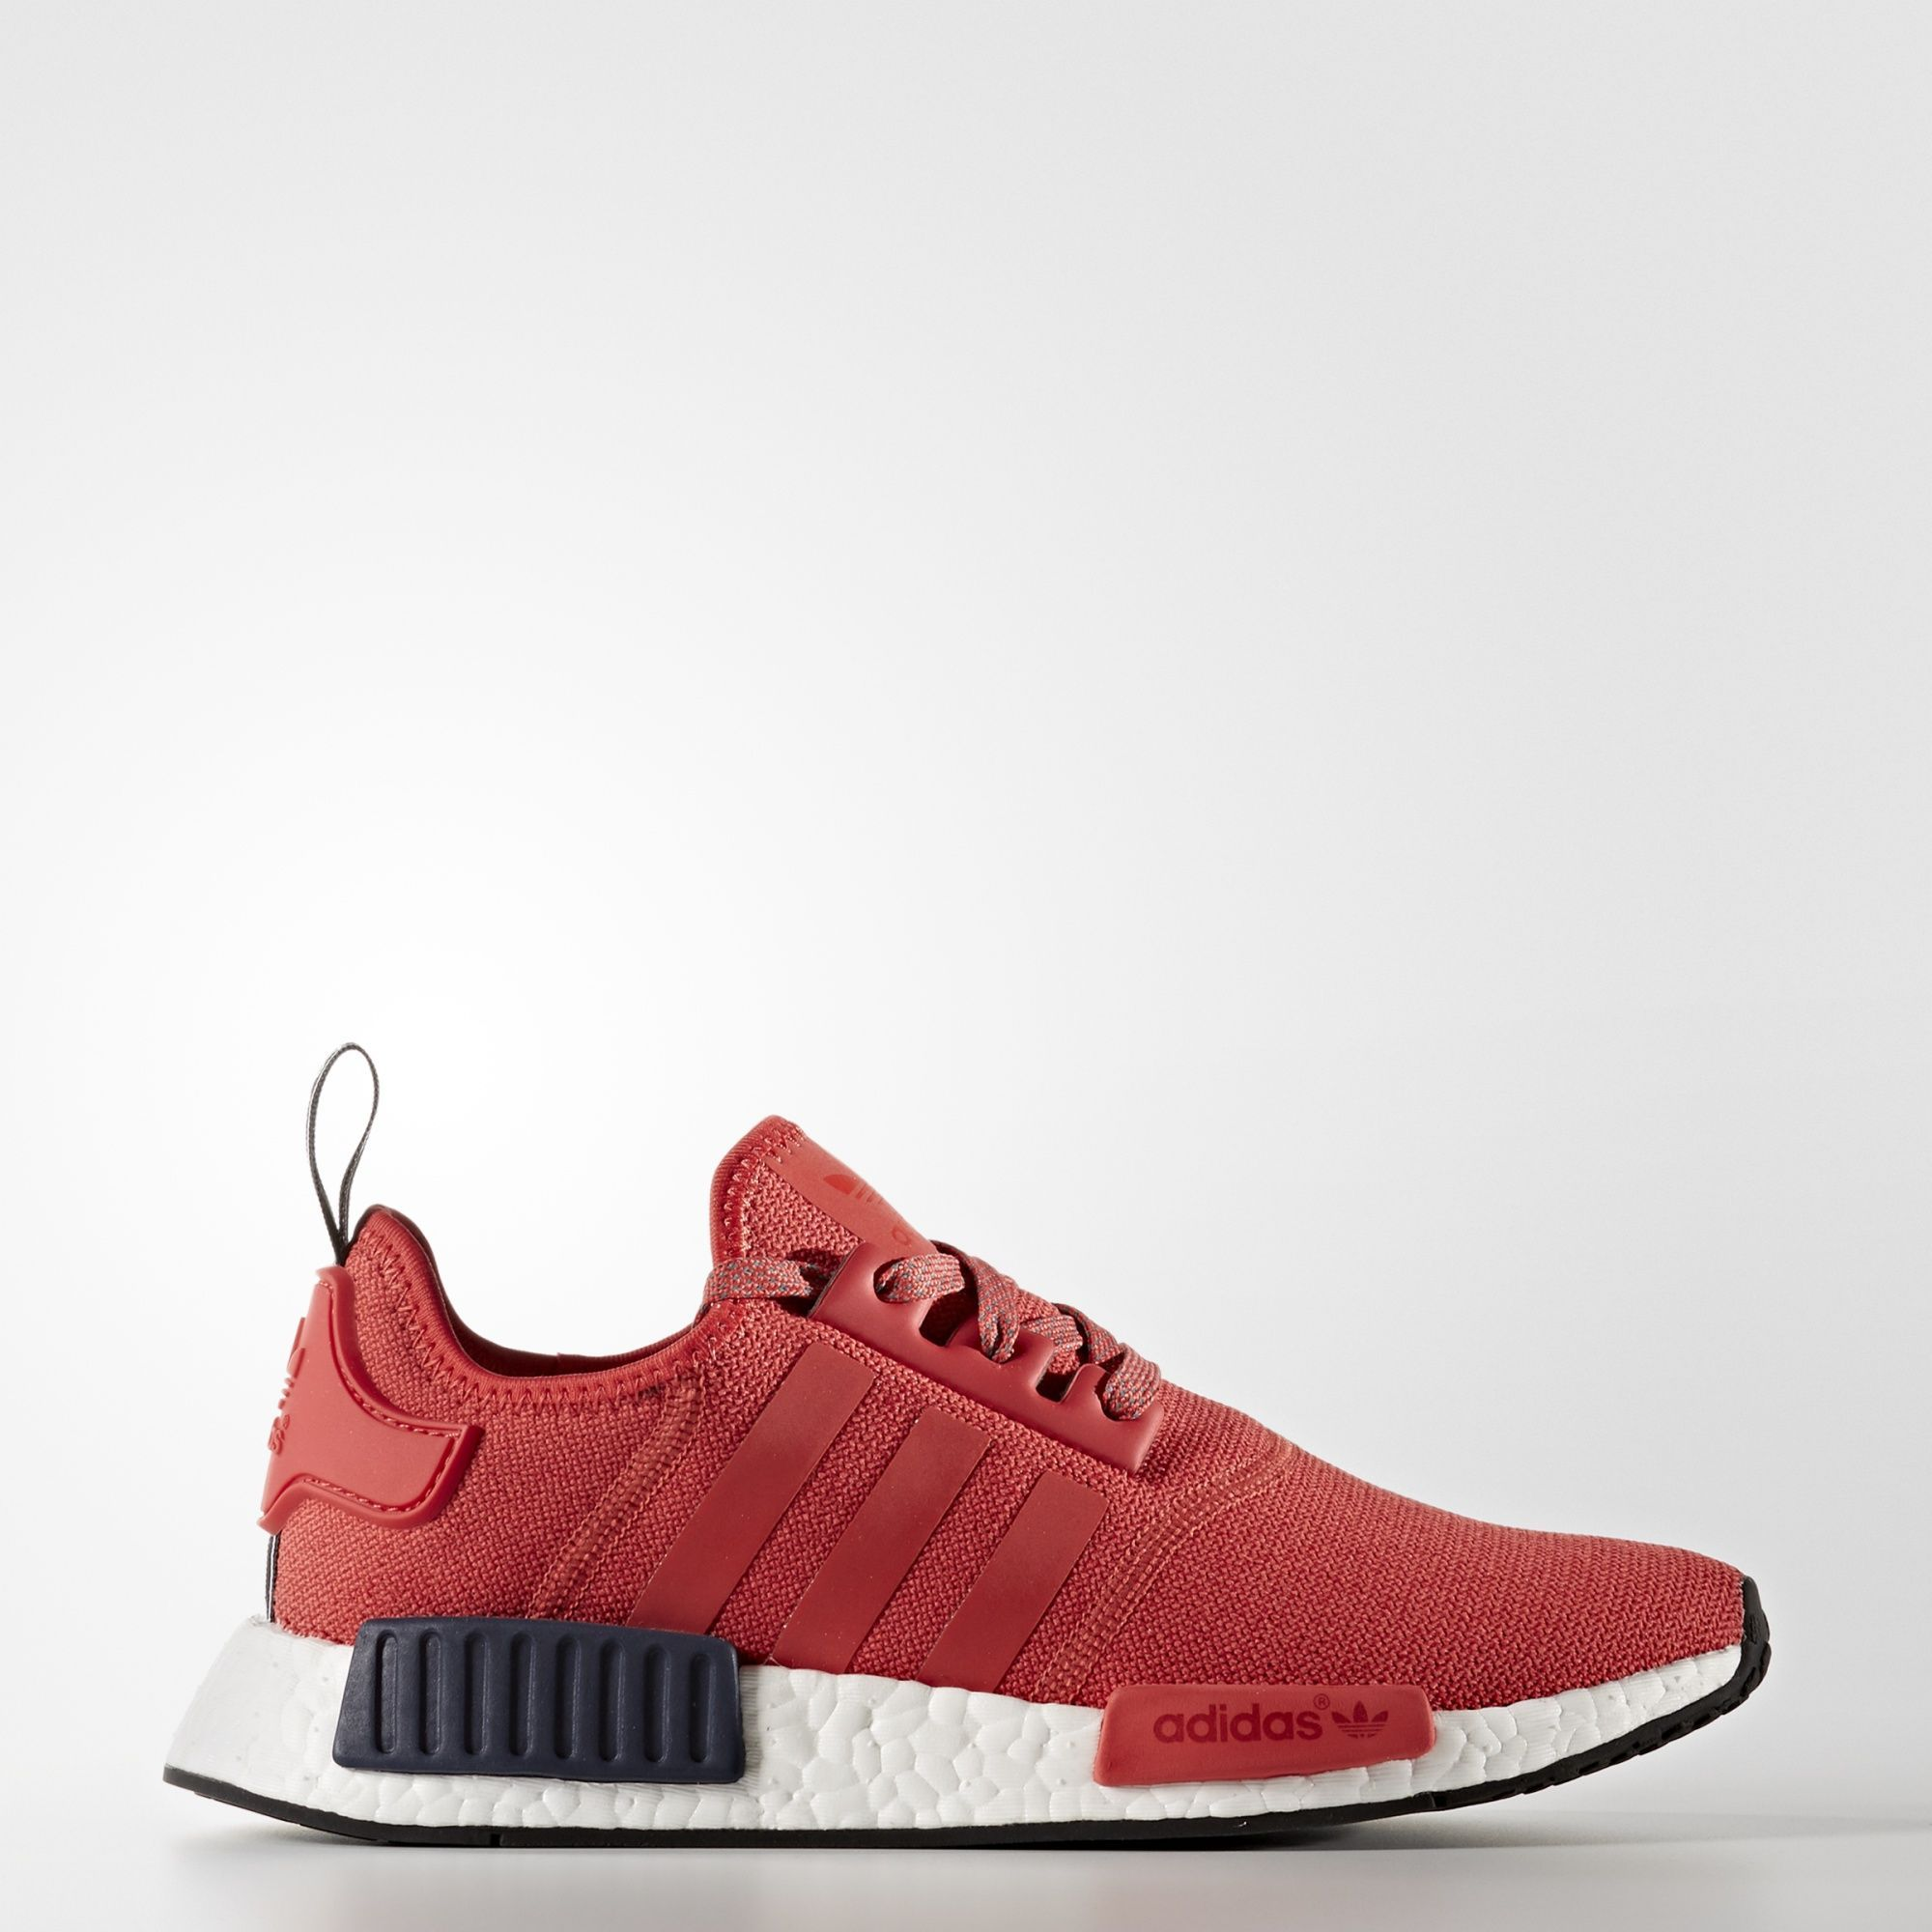 1bb446569 adidas - NMD R1 Shoes · Adidas ShoesAdidas Nmd R1Slippers